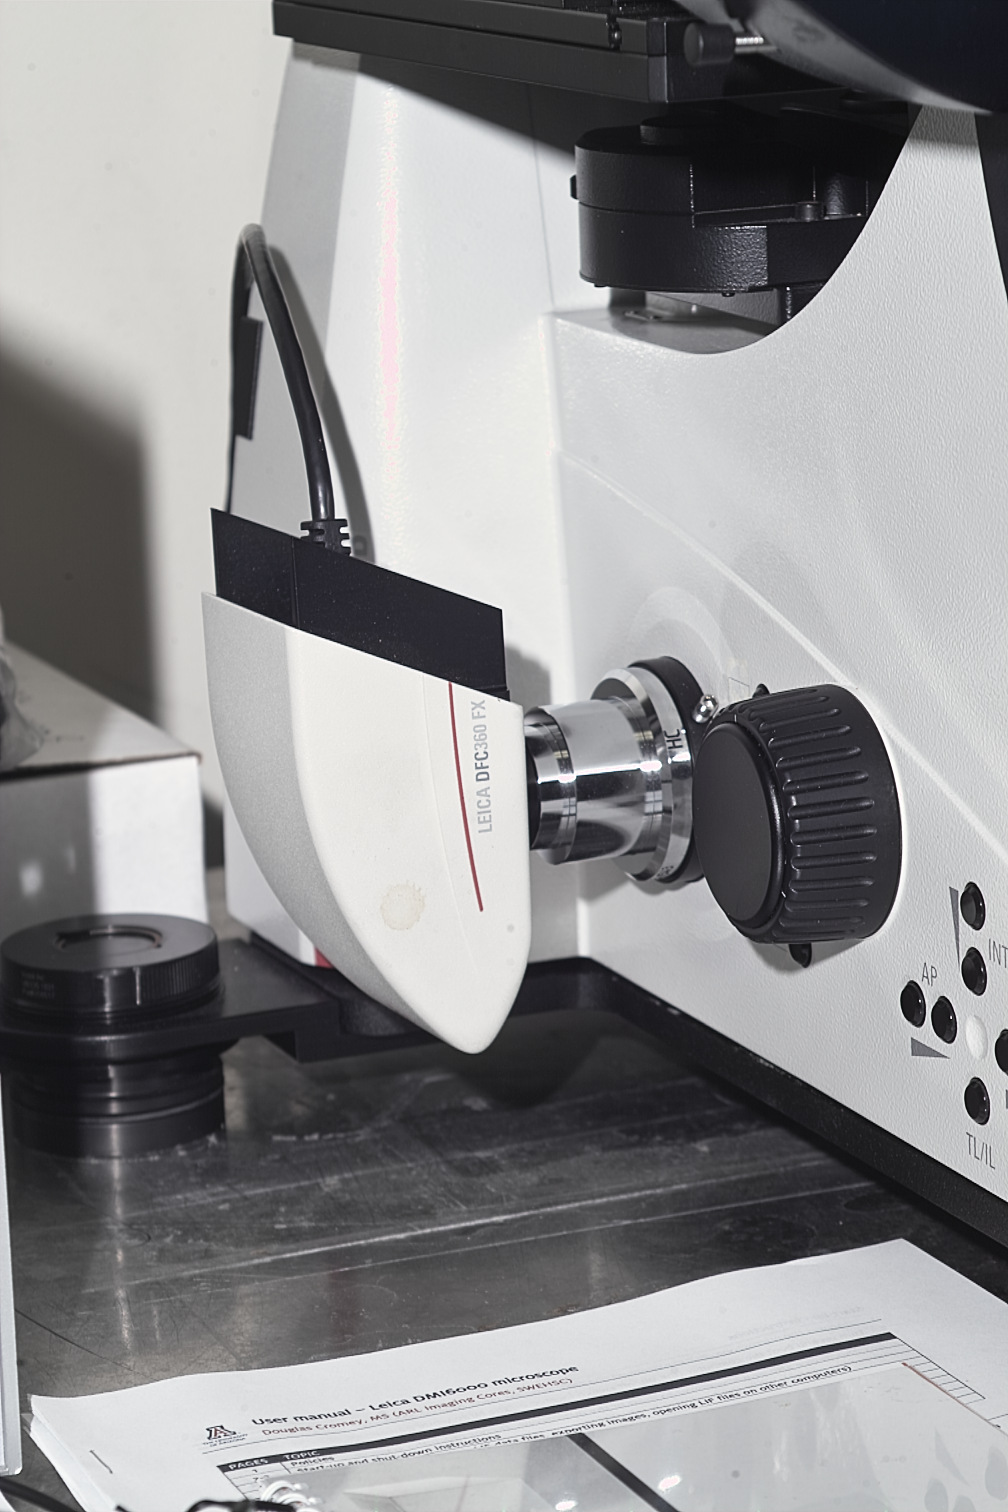 LEICA MICROSCOPE INVERTED DMI-6000B LED EPI-FLUORESCENCE WITH PHASE AND DIC - DIGITAL